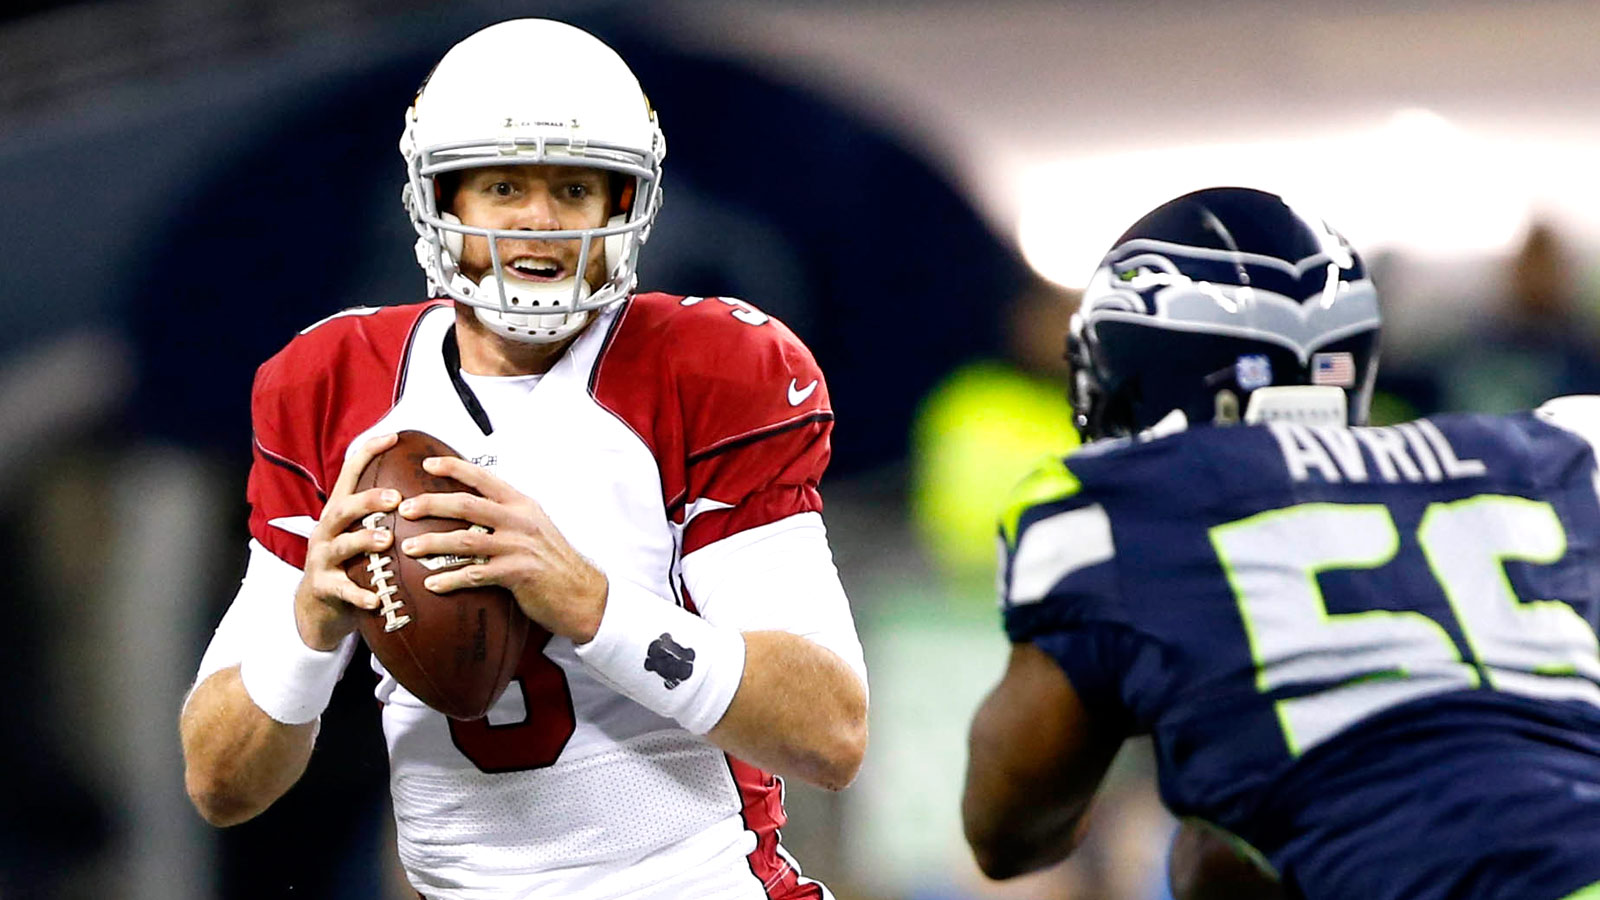 NFC West Notebook: Palmer, Cardinals tilt balance of power in division